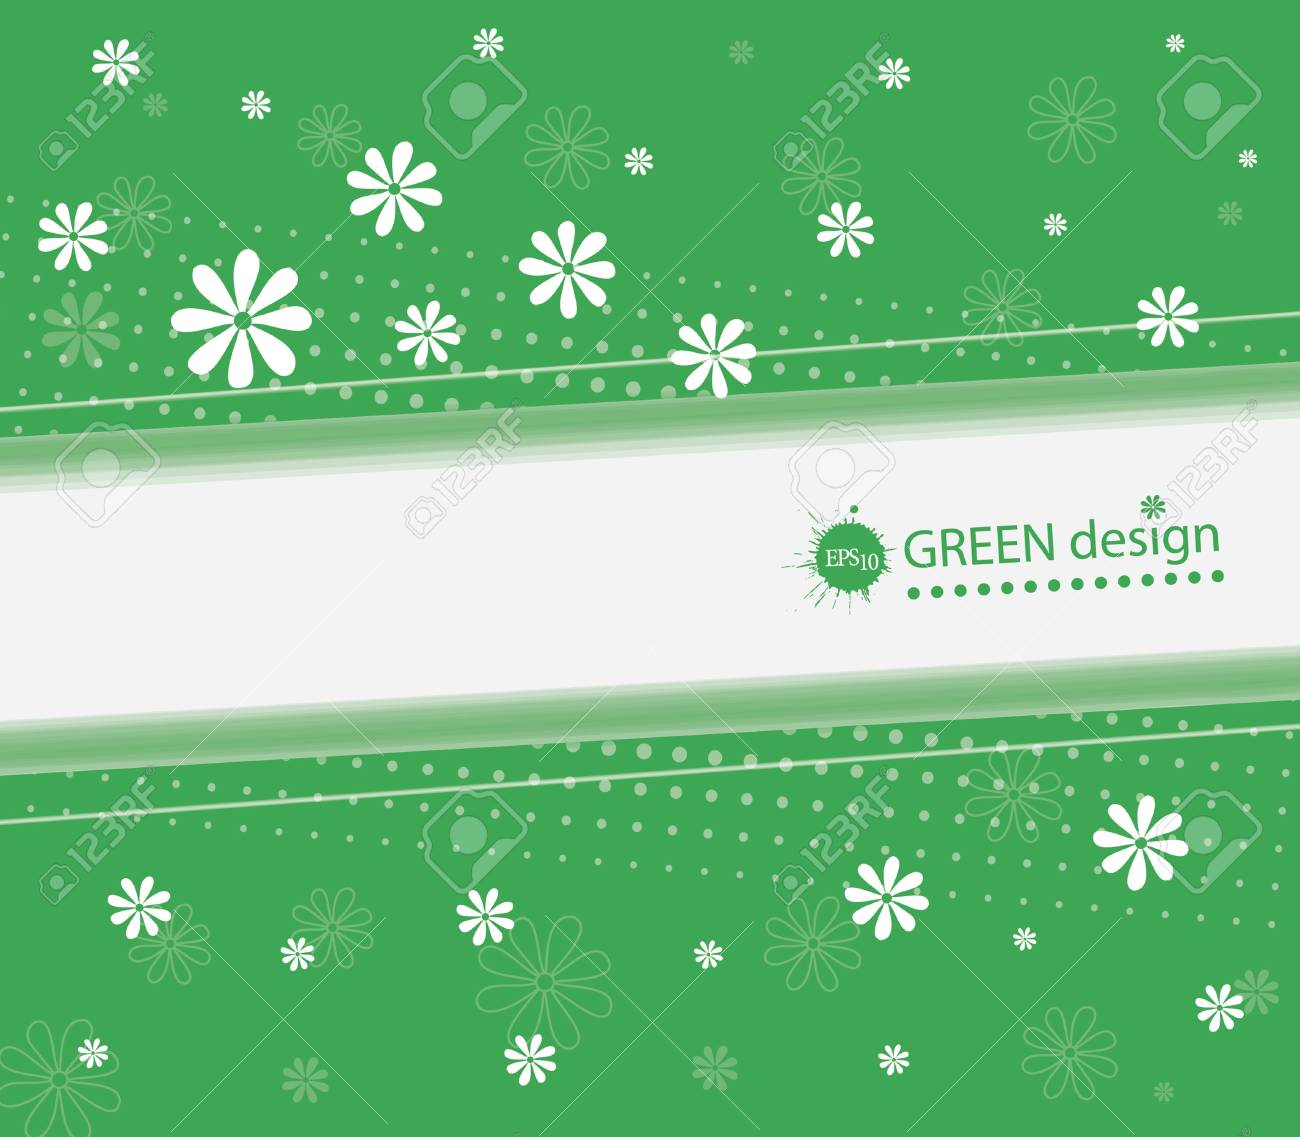 Abstract Green Background Stock Vector - 13114978